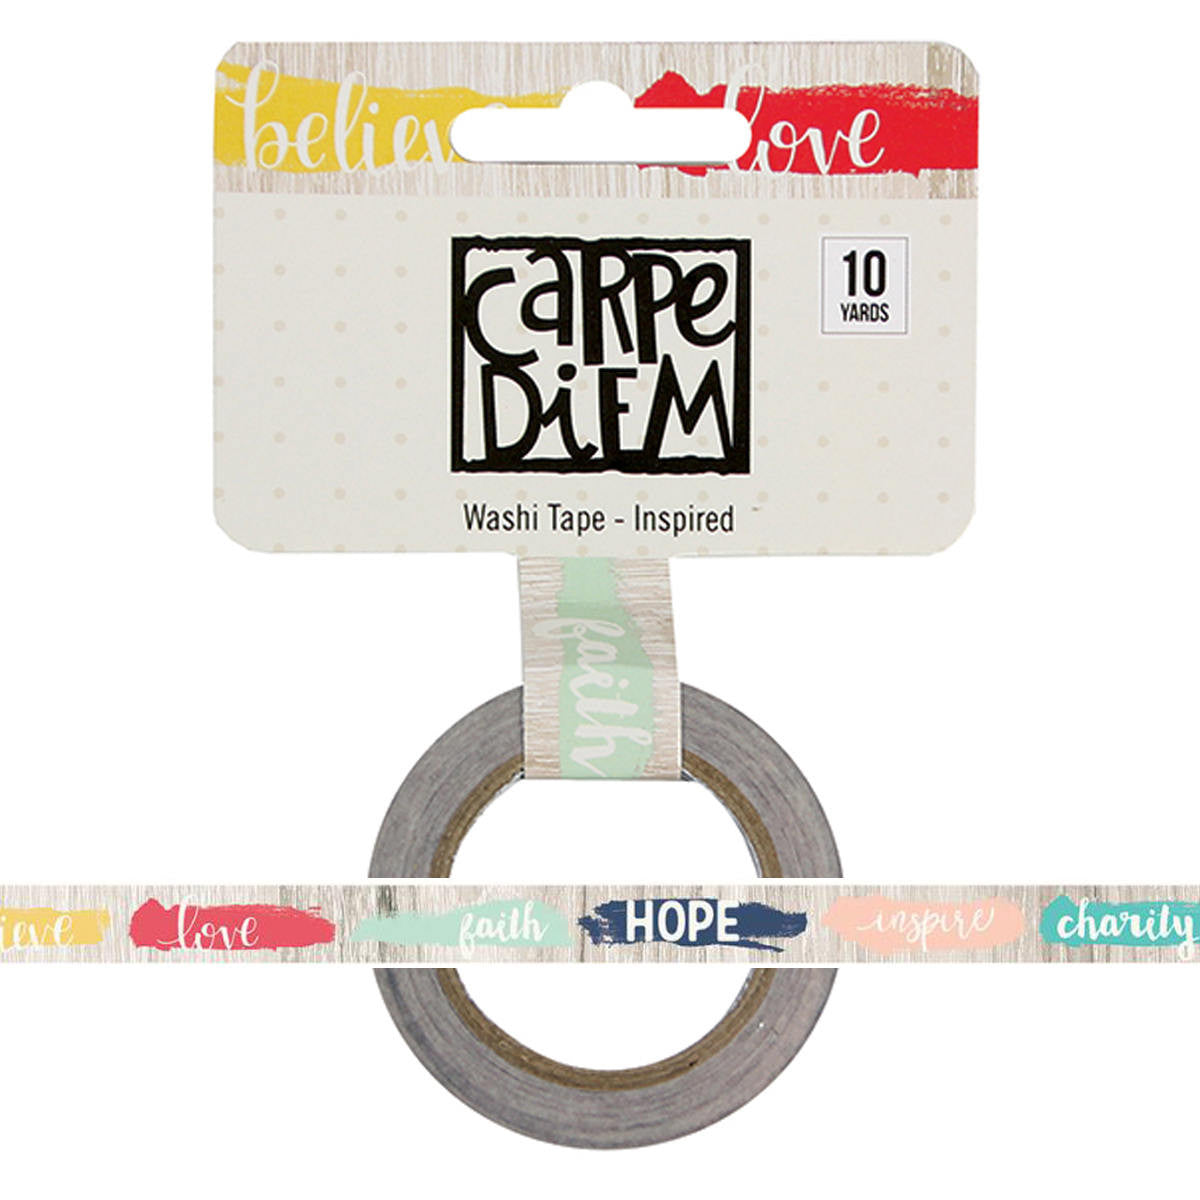 INSPIRED Faith Carpe Diem Washi Tape, 15mm x 10 yards